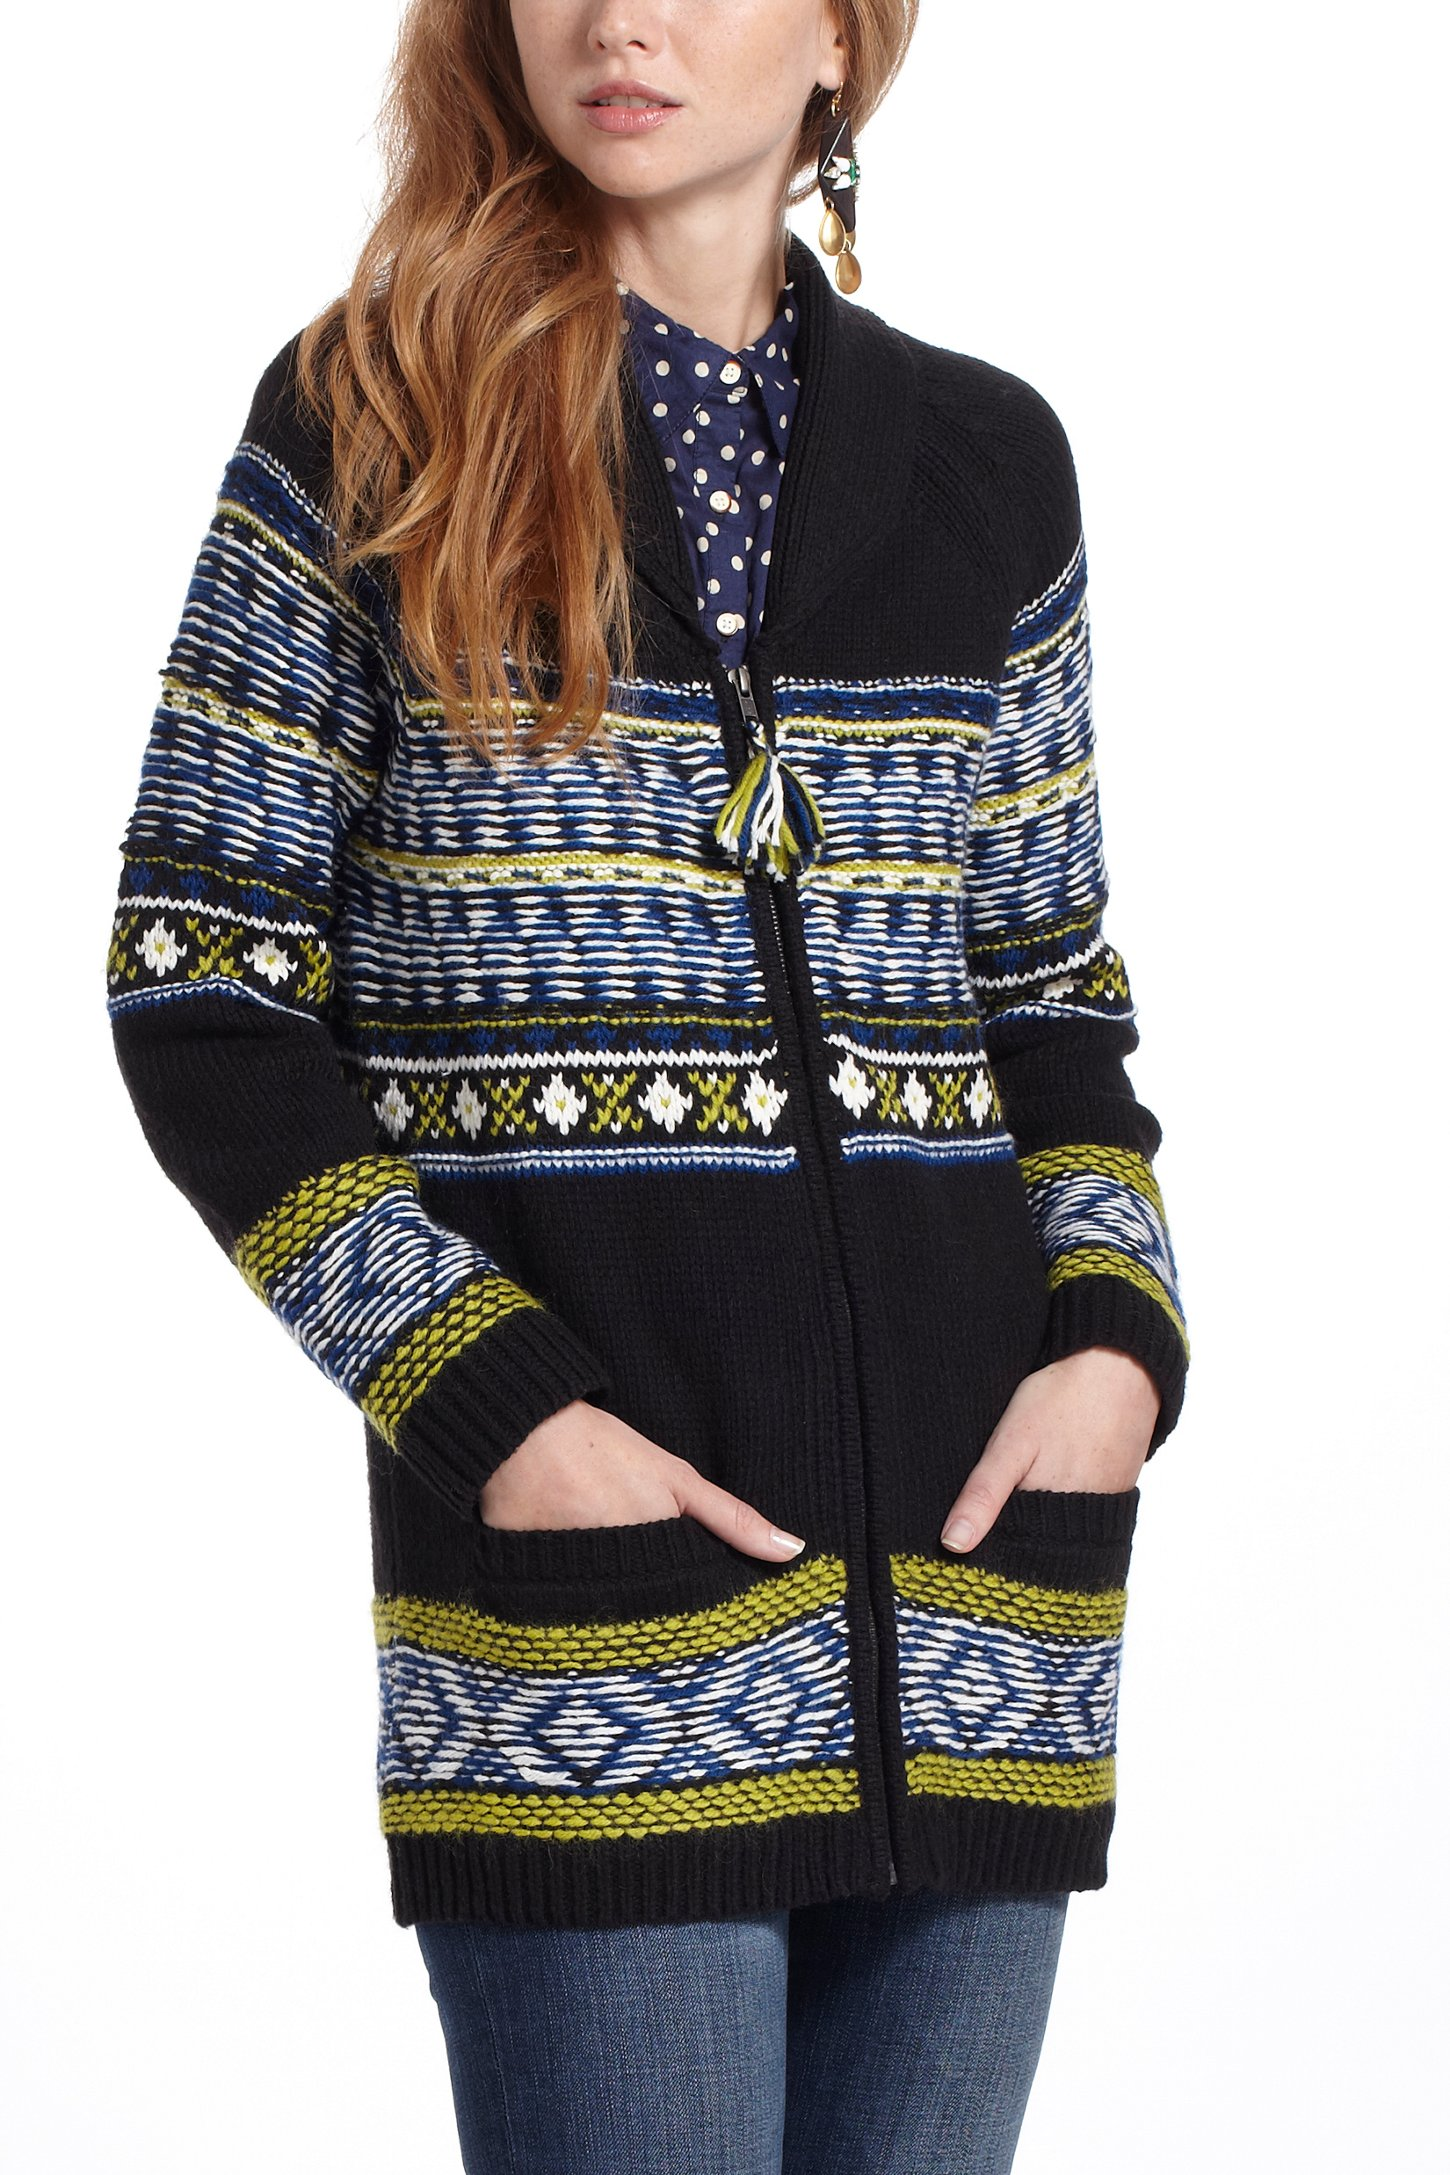 Anthropologie Batley Fairisle Sweatercoat | Lyst